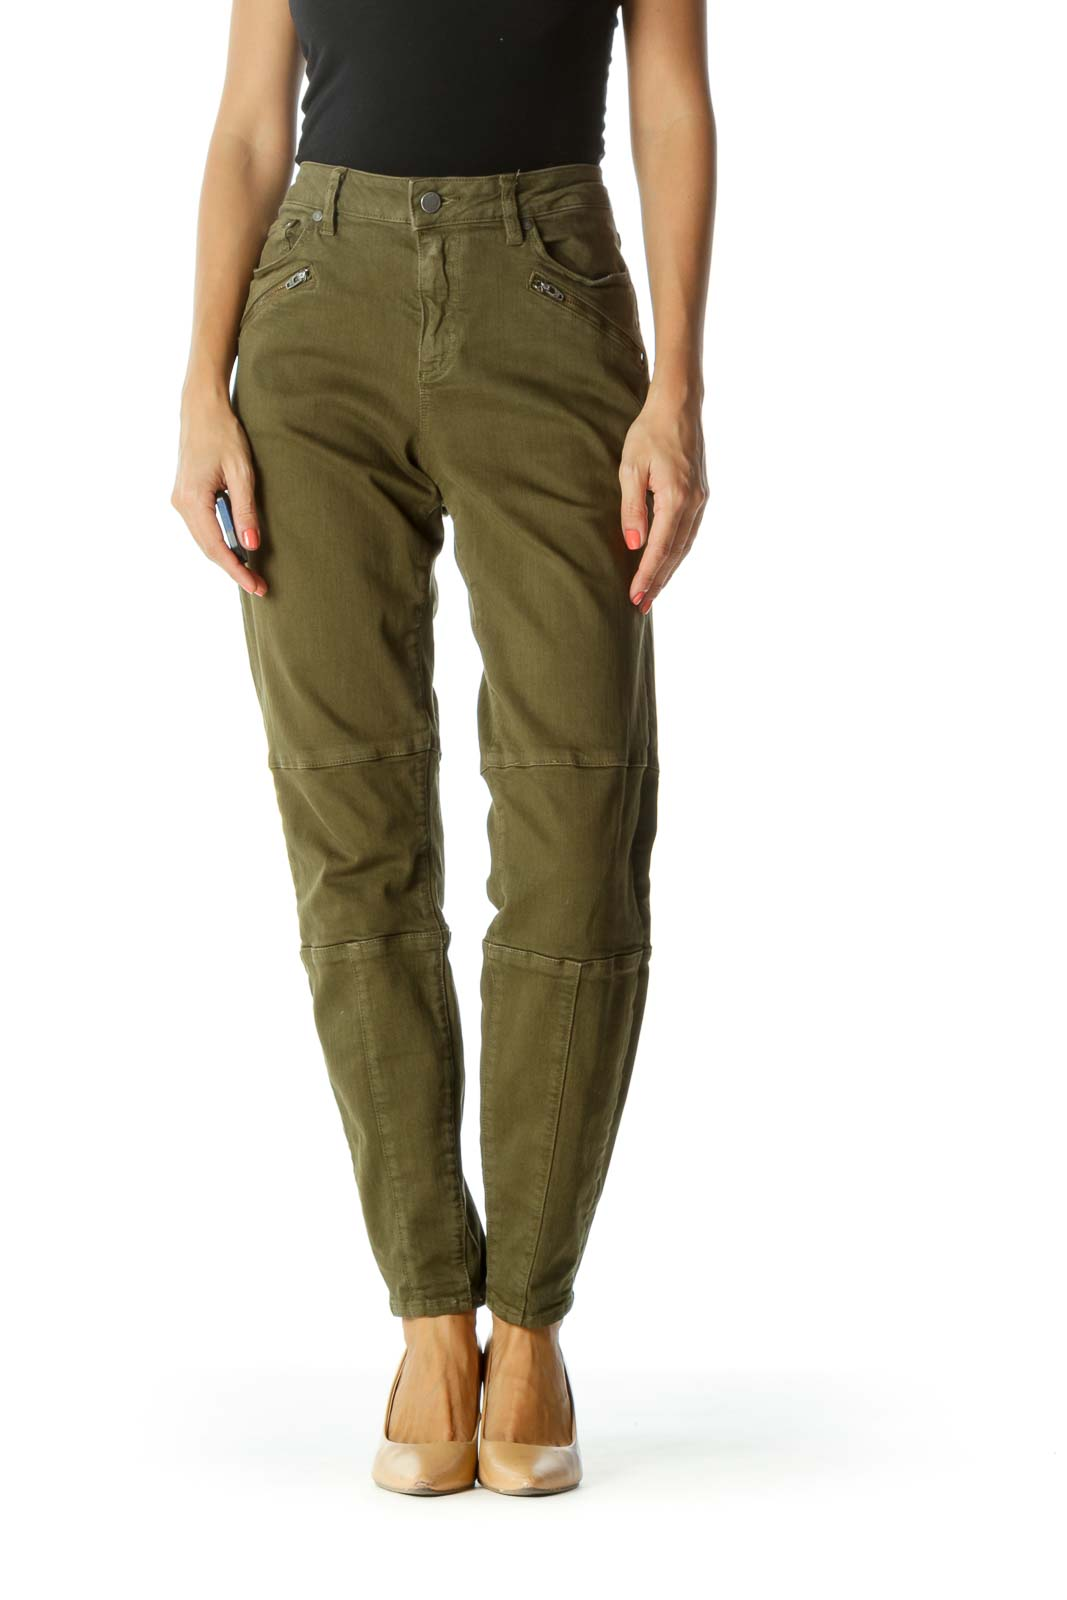 Olive Green Zipper-Details Stretch Tapered Pants Front